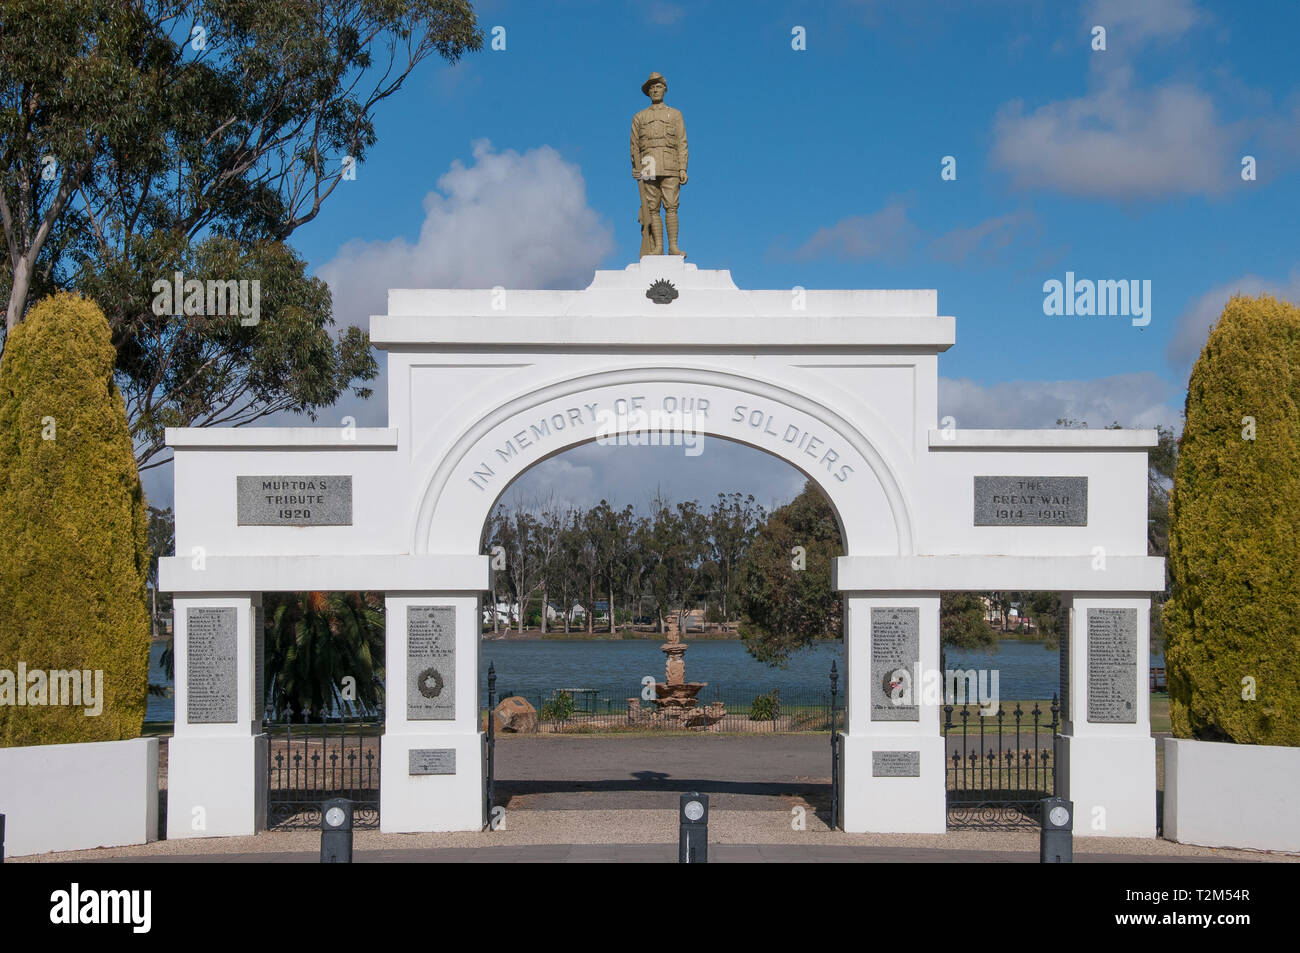 War memorial park at Murtoa, Wimmera region, Victoria, Australia. The imposing park entrance belies the dwindling population of the present-day town. Stock Photo